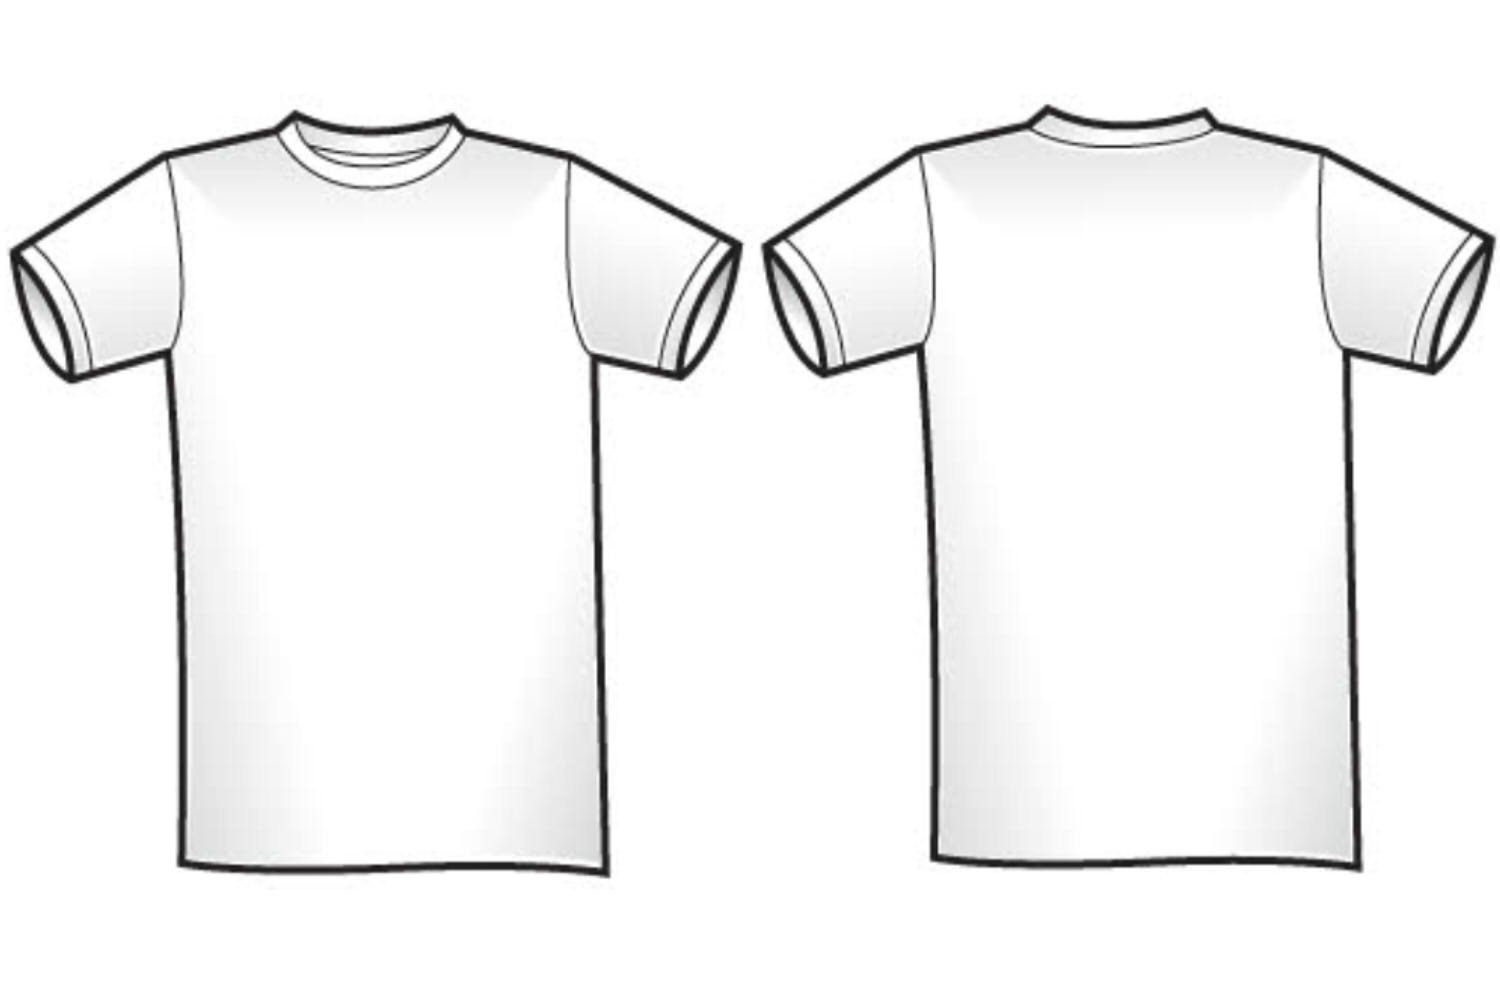 Free T Shirt Template Free Blank T Shirt Outline Download Free Clip Art Free